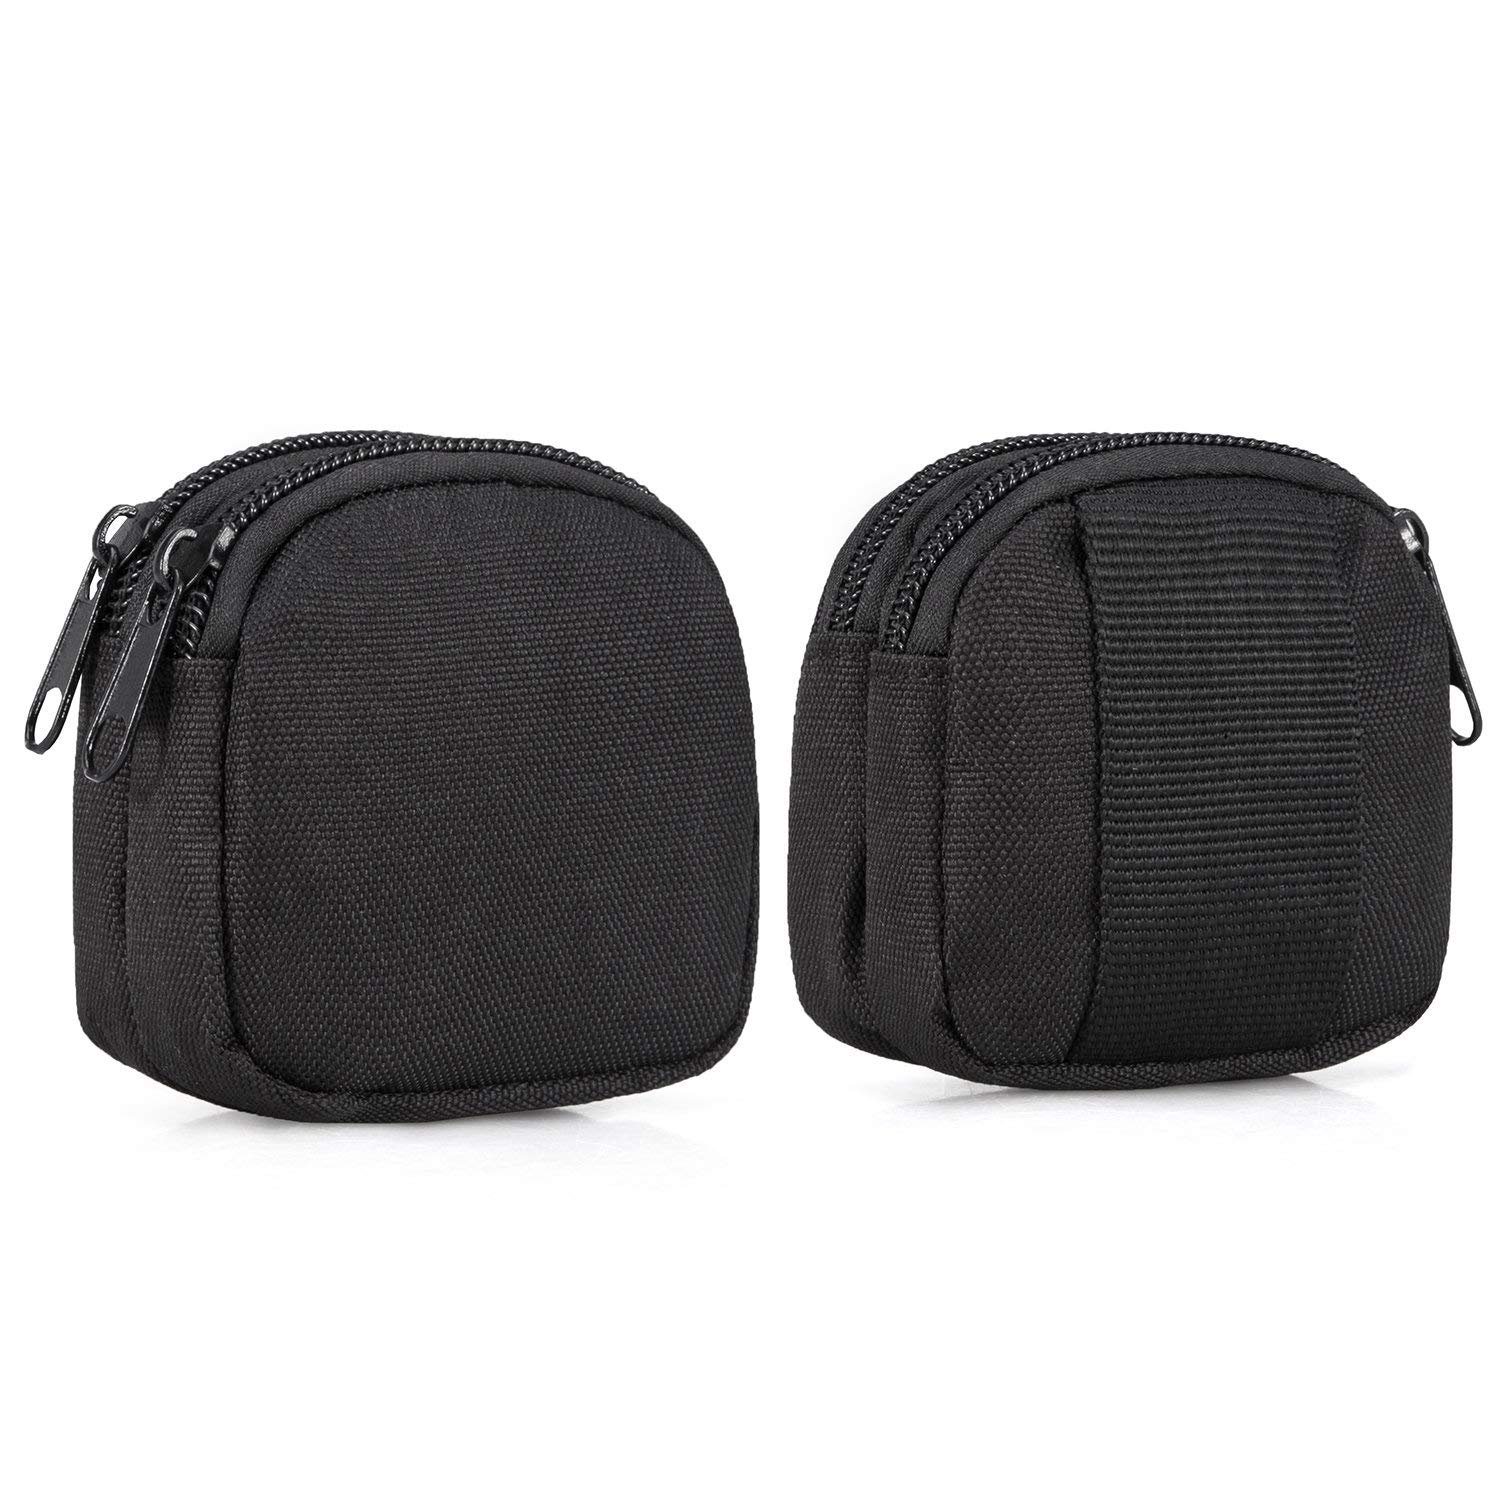 dual Layer Pockets Impartial Small Outdoor Pouch,mini Purse Organizer Army Molle Gear Nylon Edc Utility Gadget Outdoor Wais waterproof